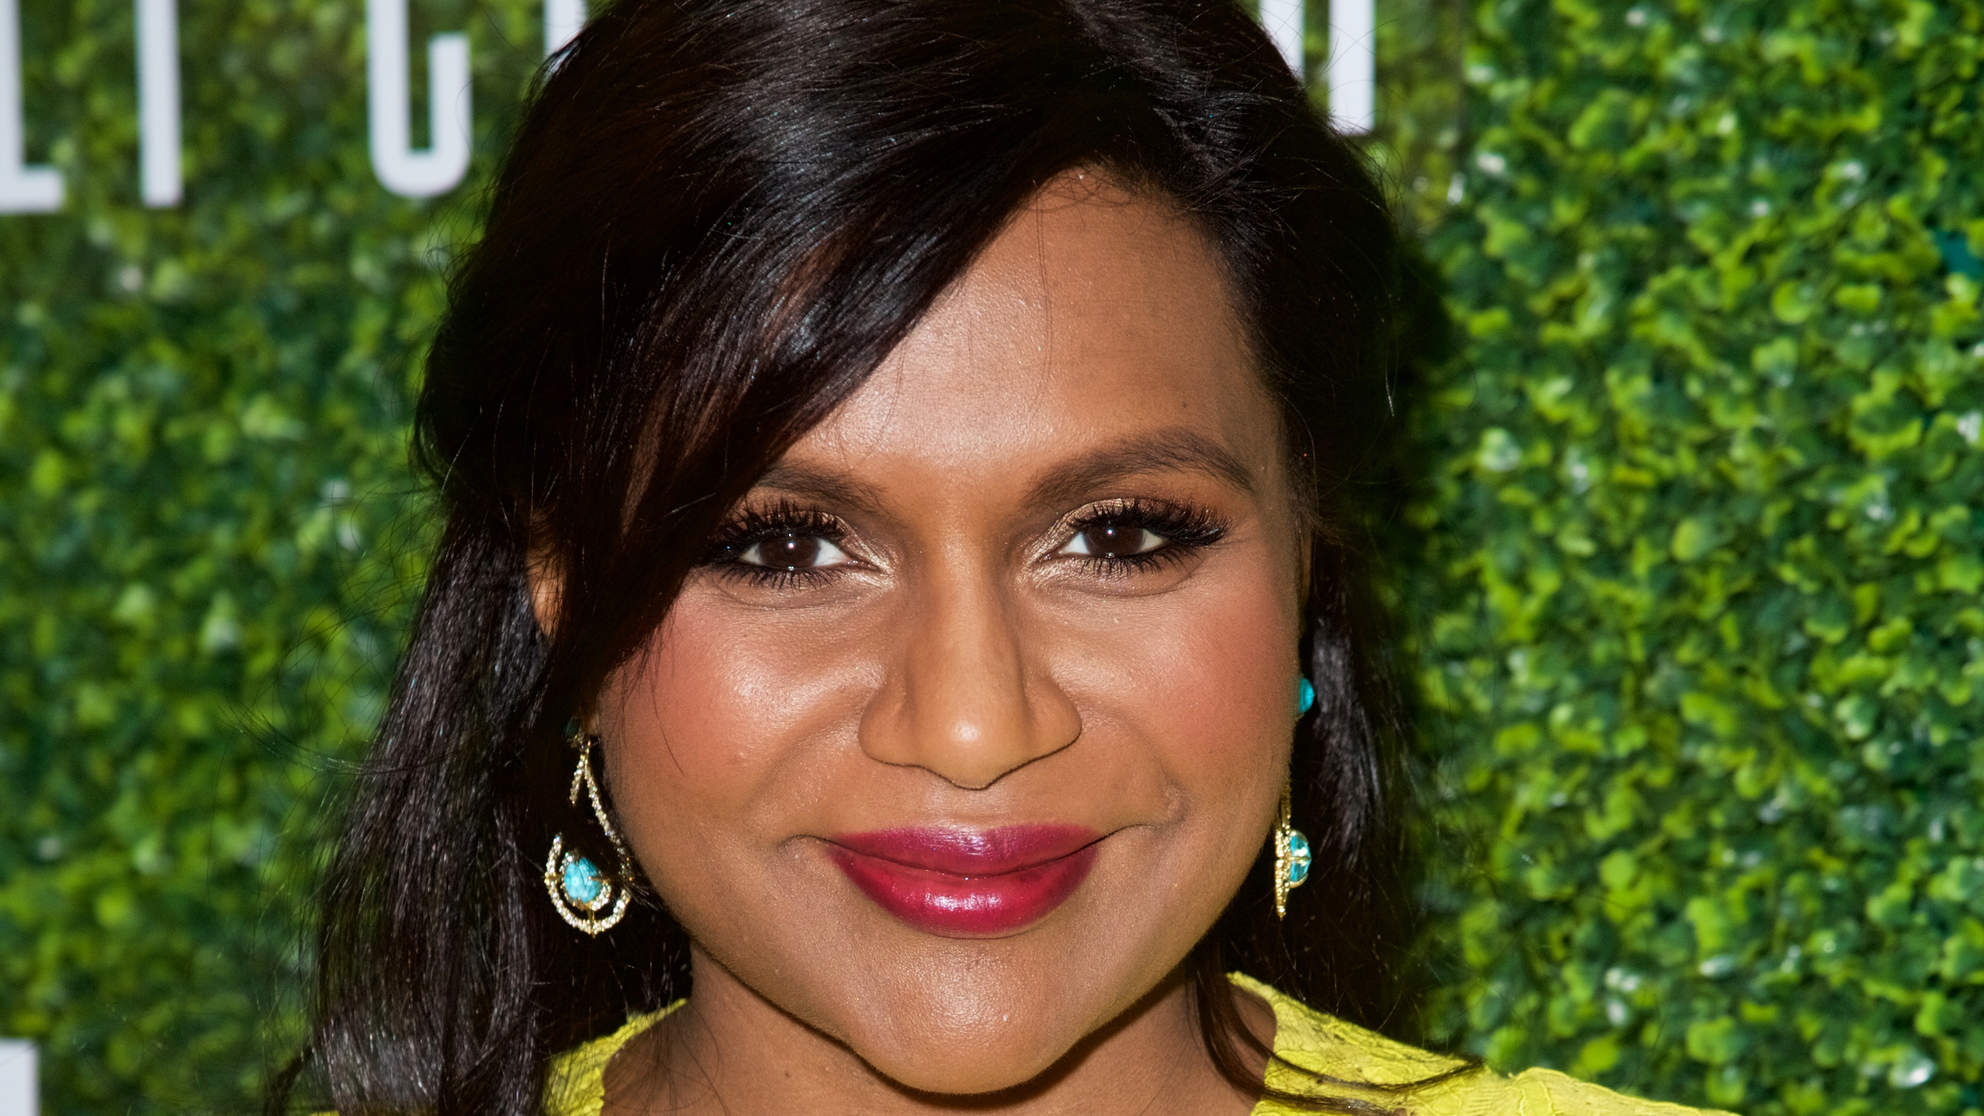 Mindy Kaling Just Posted the Most Relatable Breastfeeding Photo